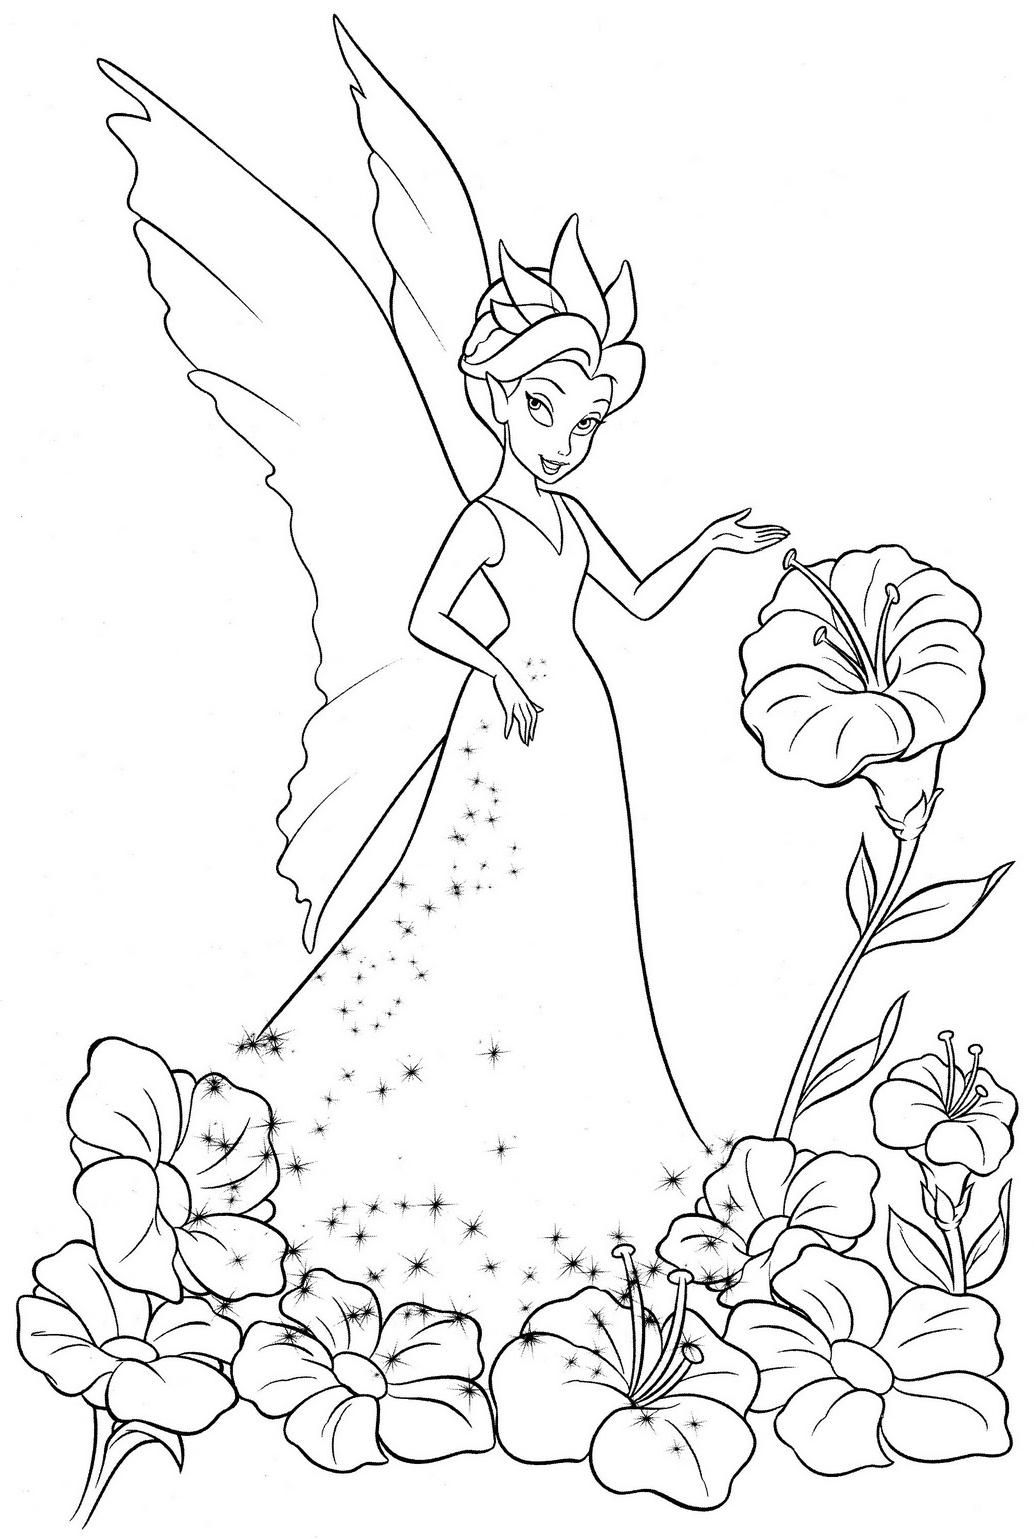 Coloring pages of tinkerbell and